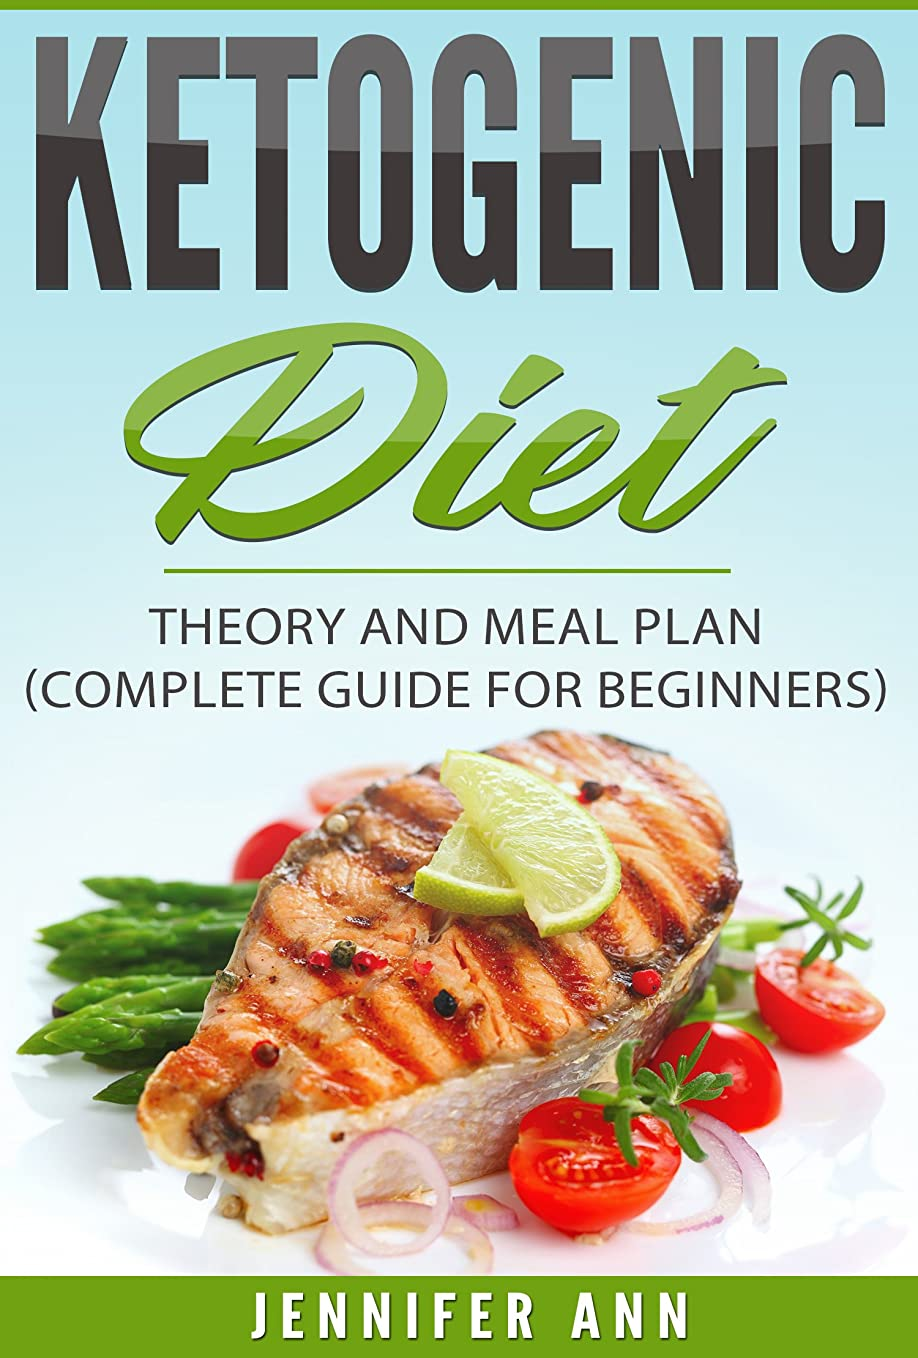 Ketogenic Diet : Theory and Meal Plan (Complete Guide for Beginners) (Weight Loss, Low-Carb, High-Fat Diet, Anti-Aging Diet) (English Edition)